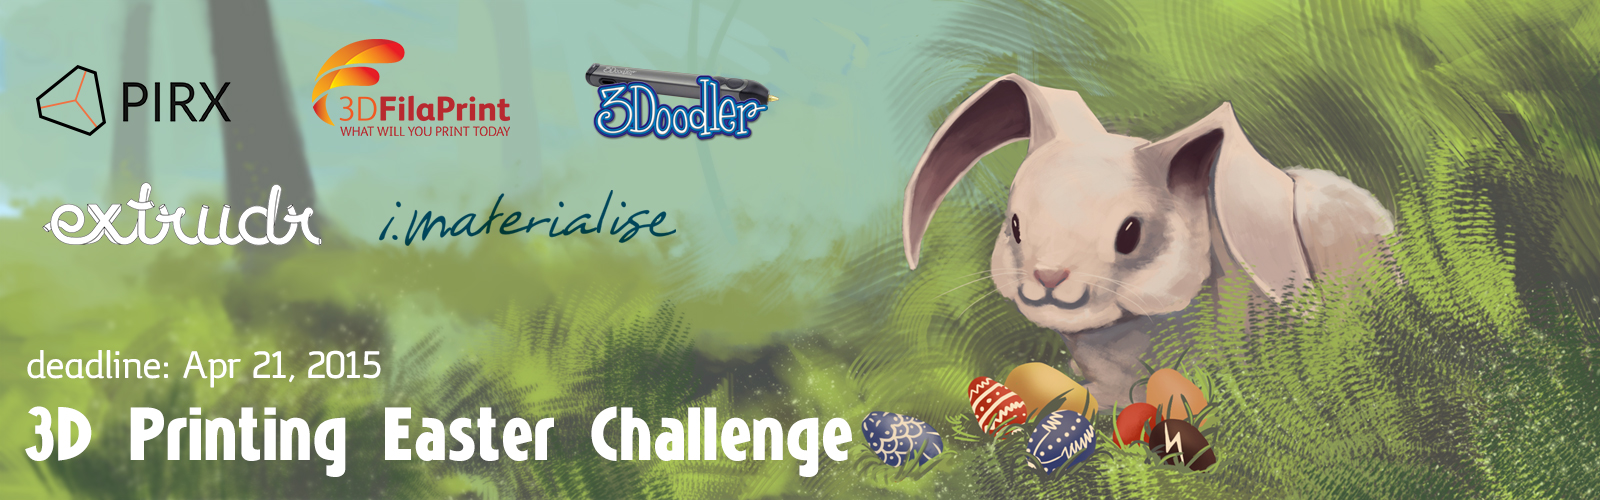 3D Printing Easter Challenge